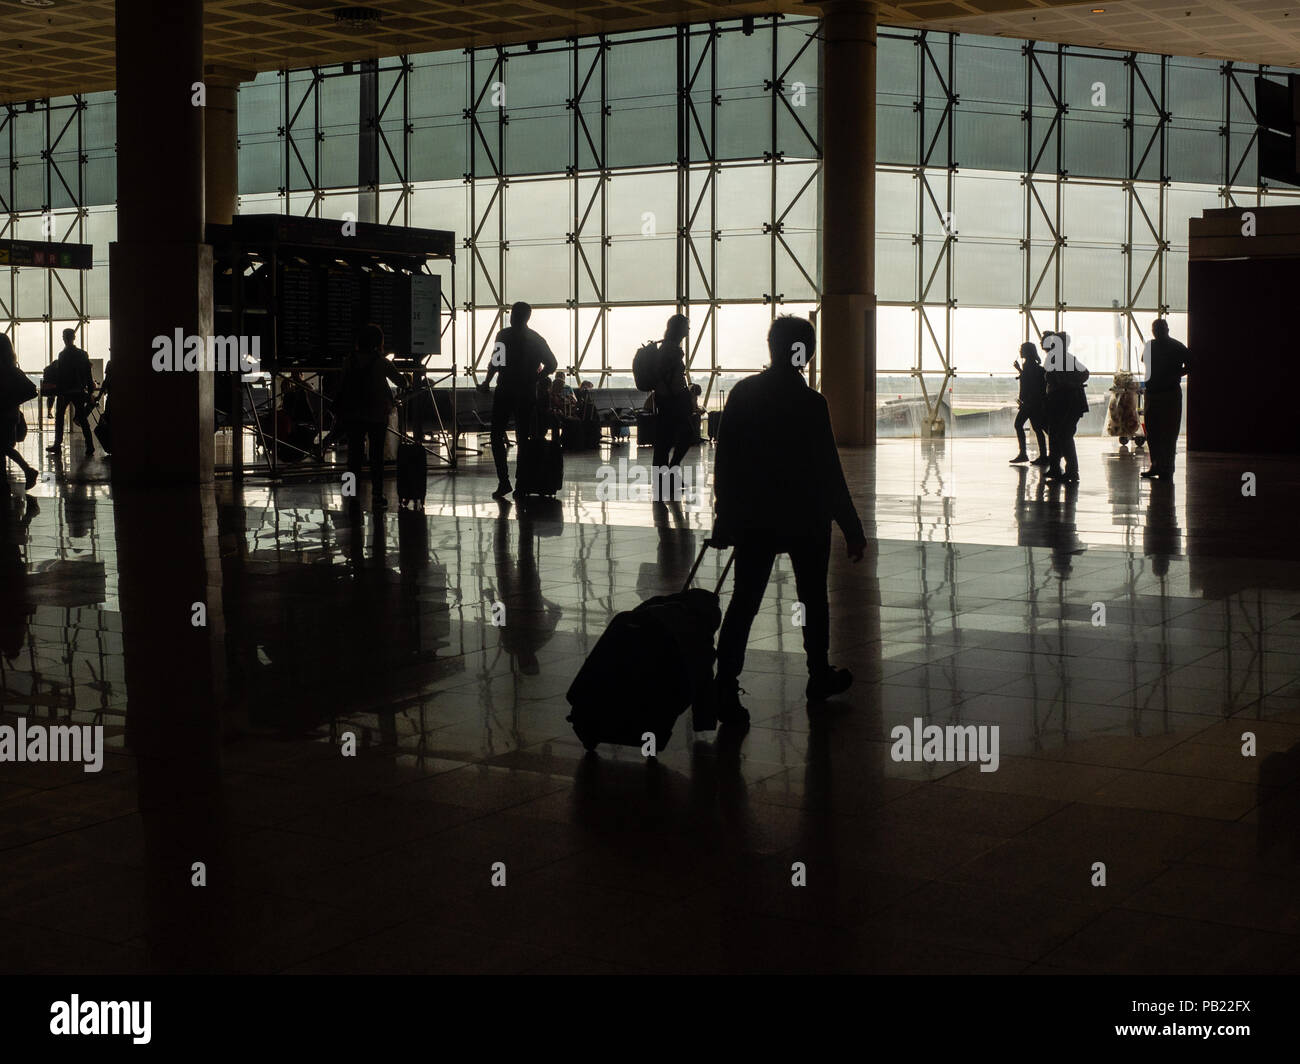 Silhouettes of travelers walking through airline terminal, Barcelona International Airport, Spain. - Stock Image